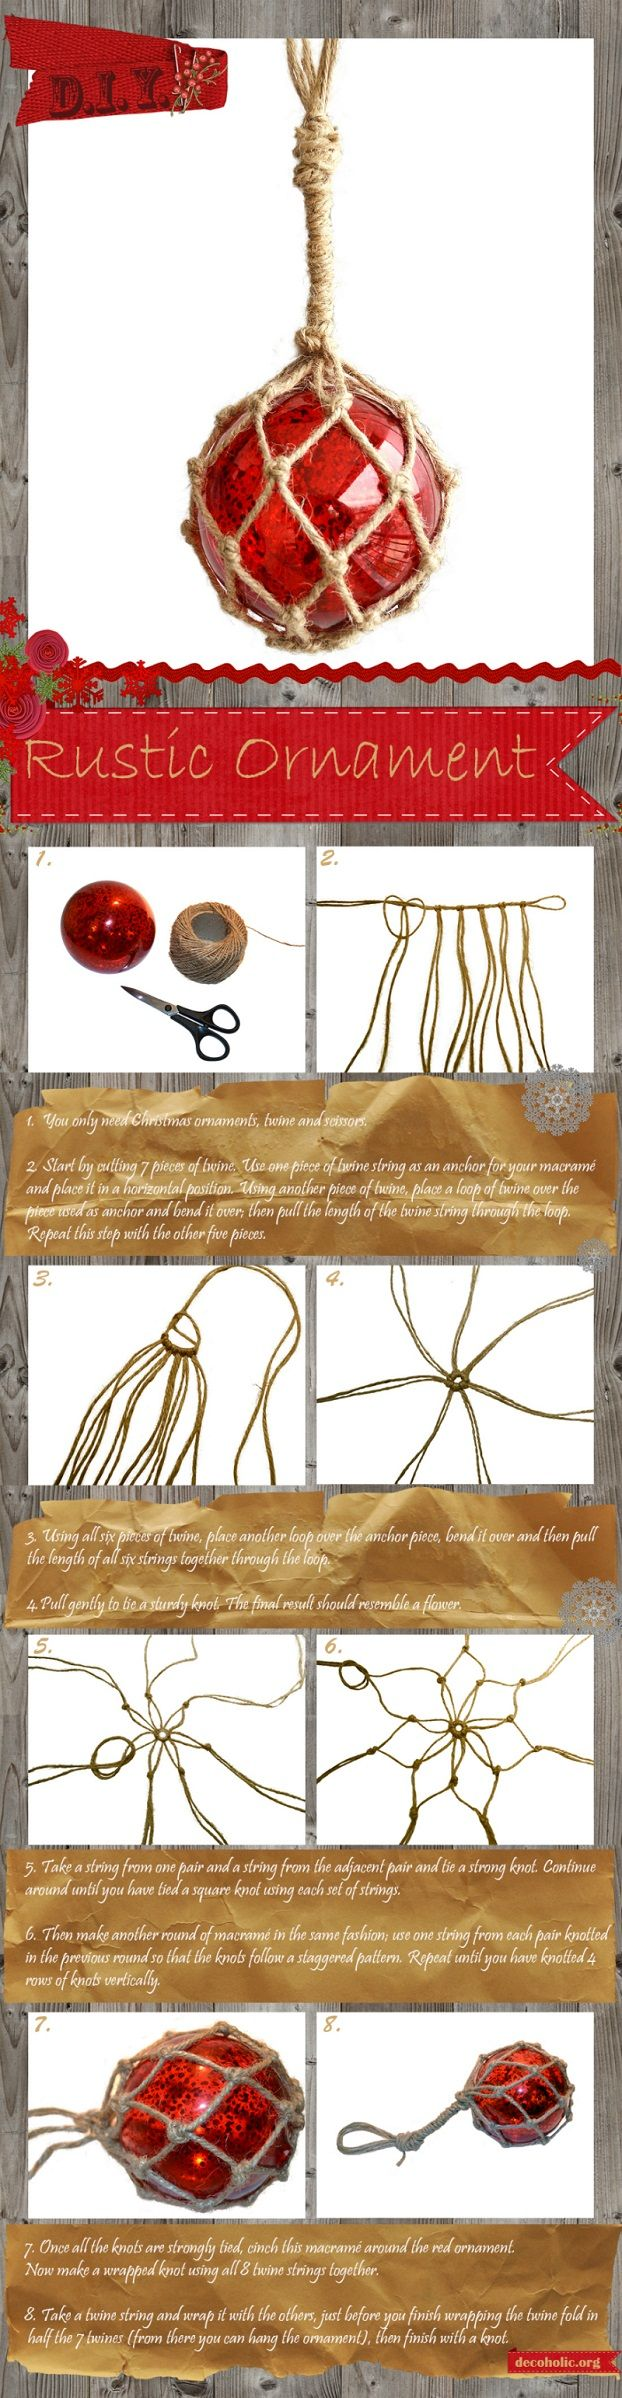 DIY Christmas craft macrame rustic ornament